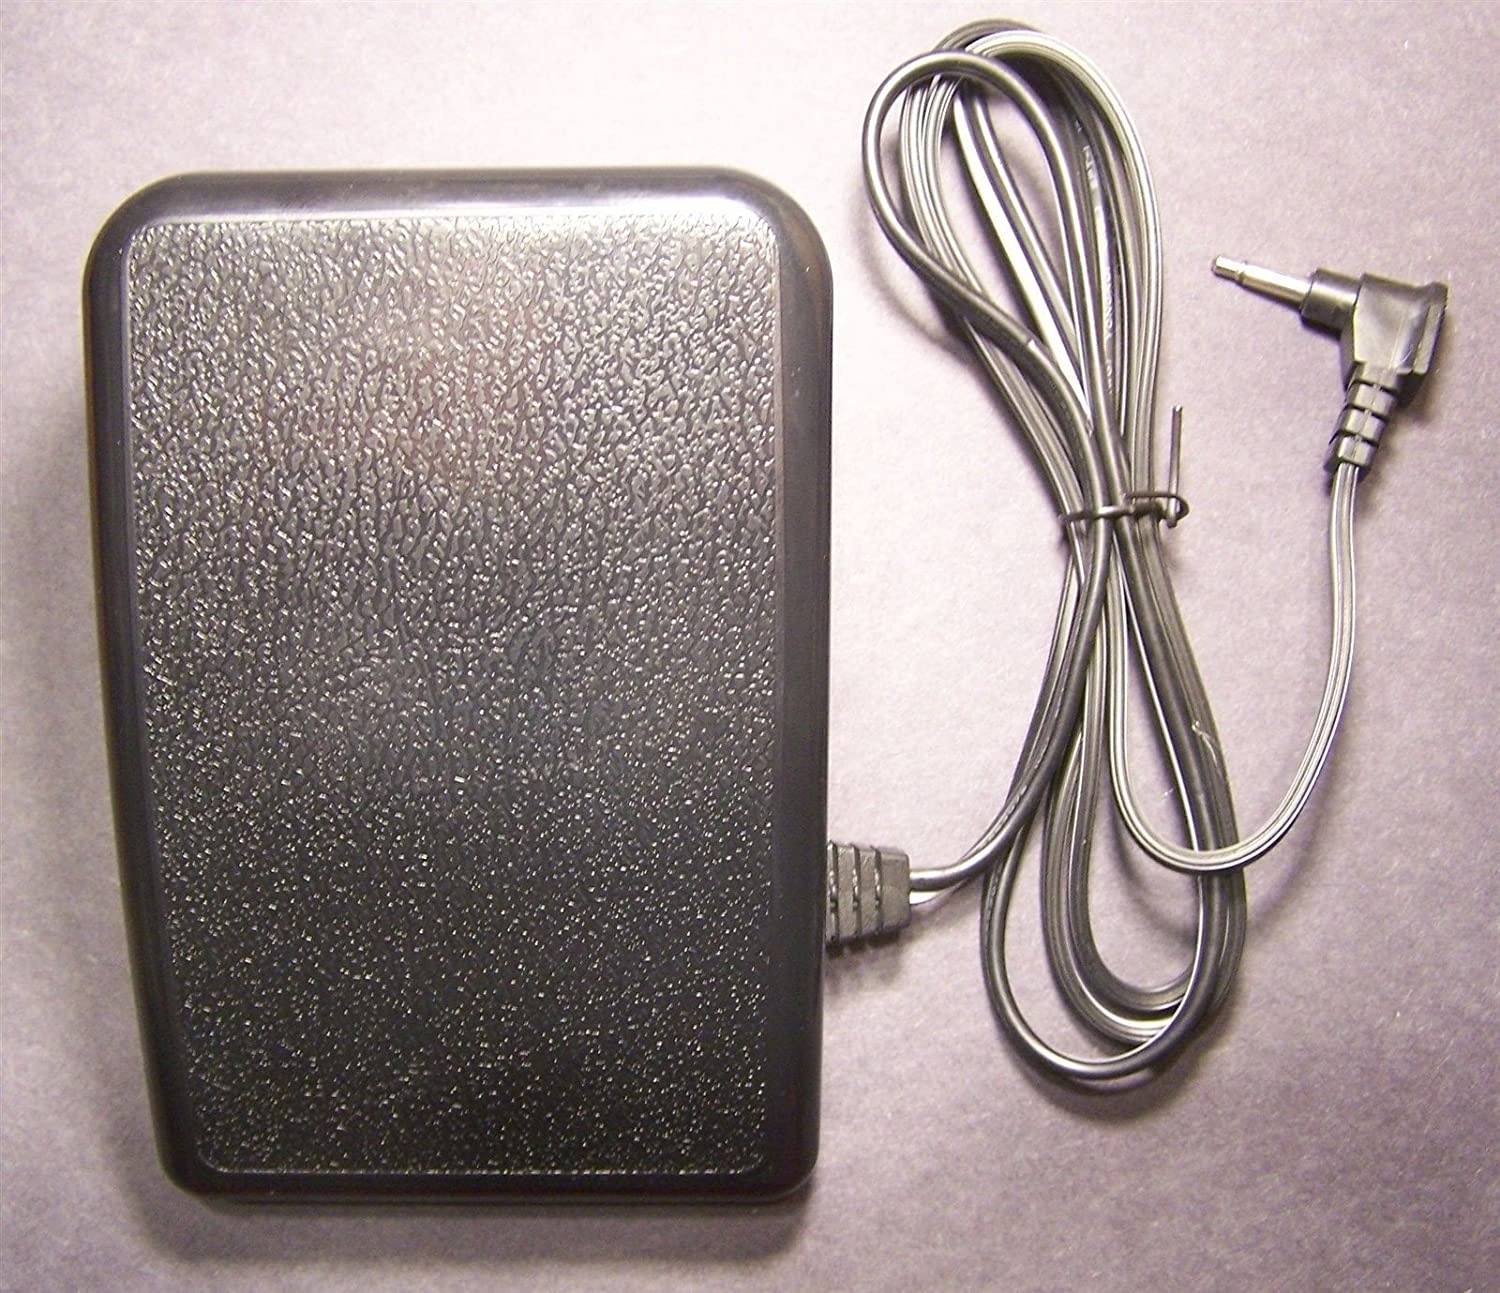 (Ship from USA) FOOT CONTROL PEDAL # 4164361-01 W/ Cord Singer Alt#s JF-1000 YC-485EC 3D-168A *PLKHG484UY3181 Usongs Trading INC